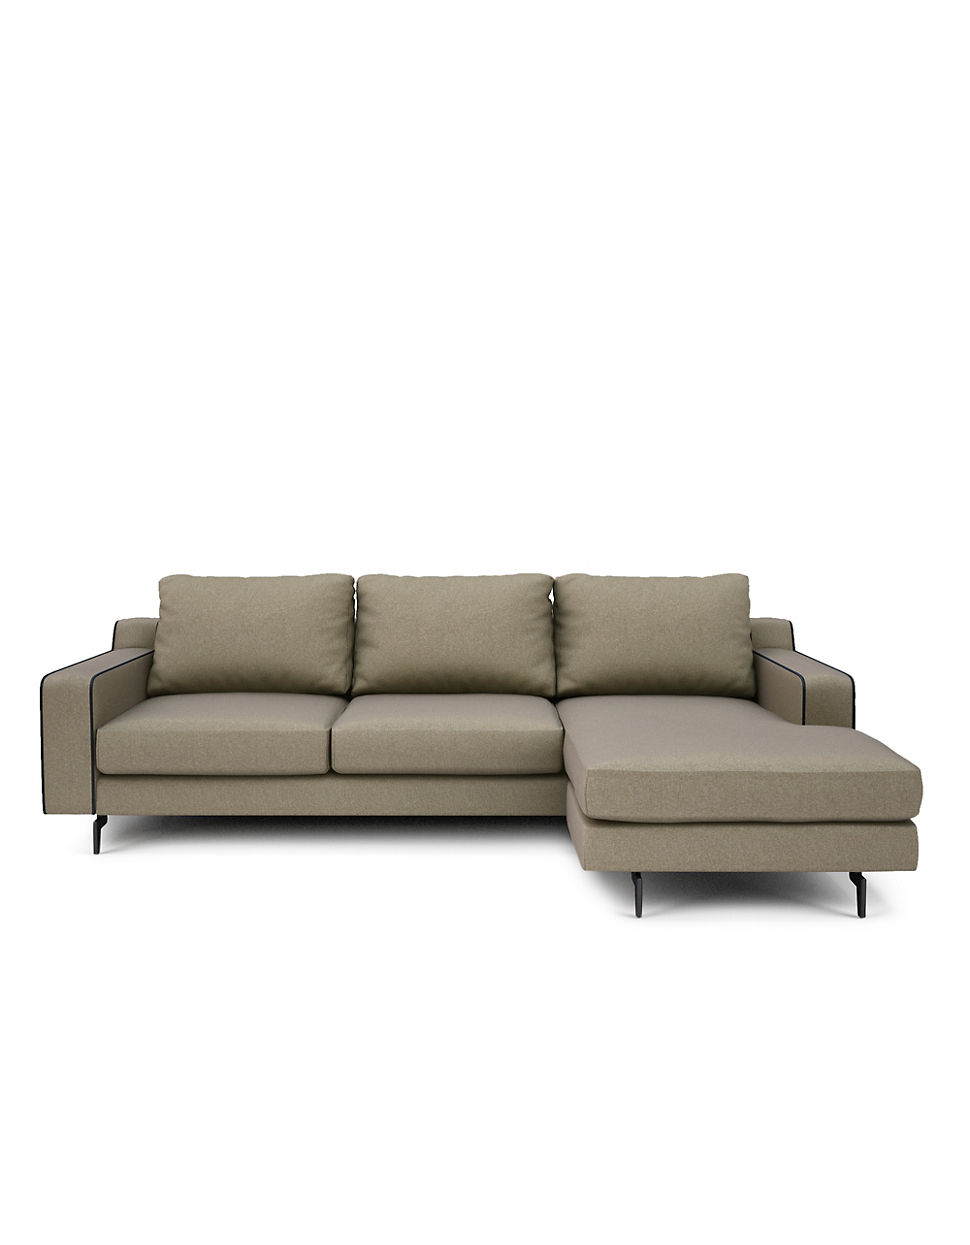 Sectional sofas edmonton ab refil sofa for Sectional sofa edmonton